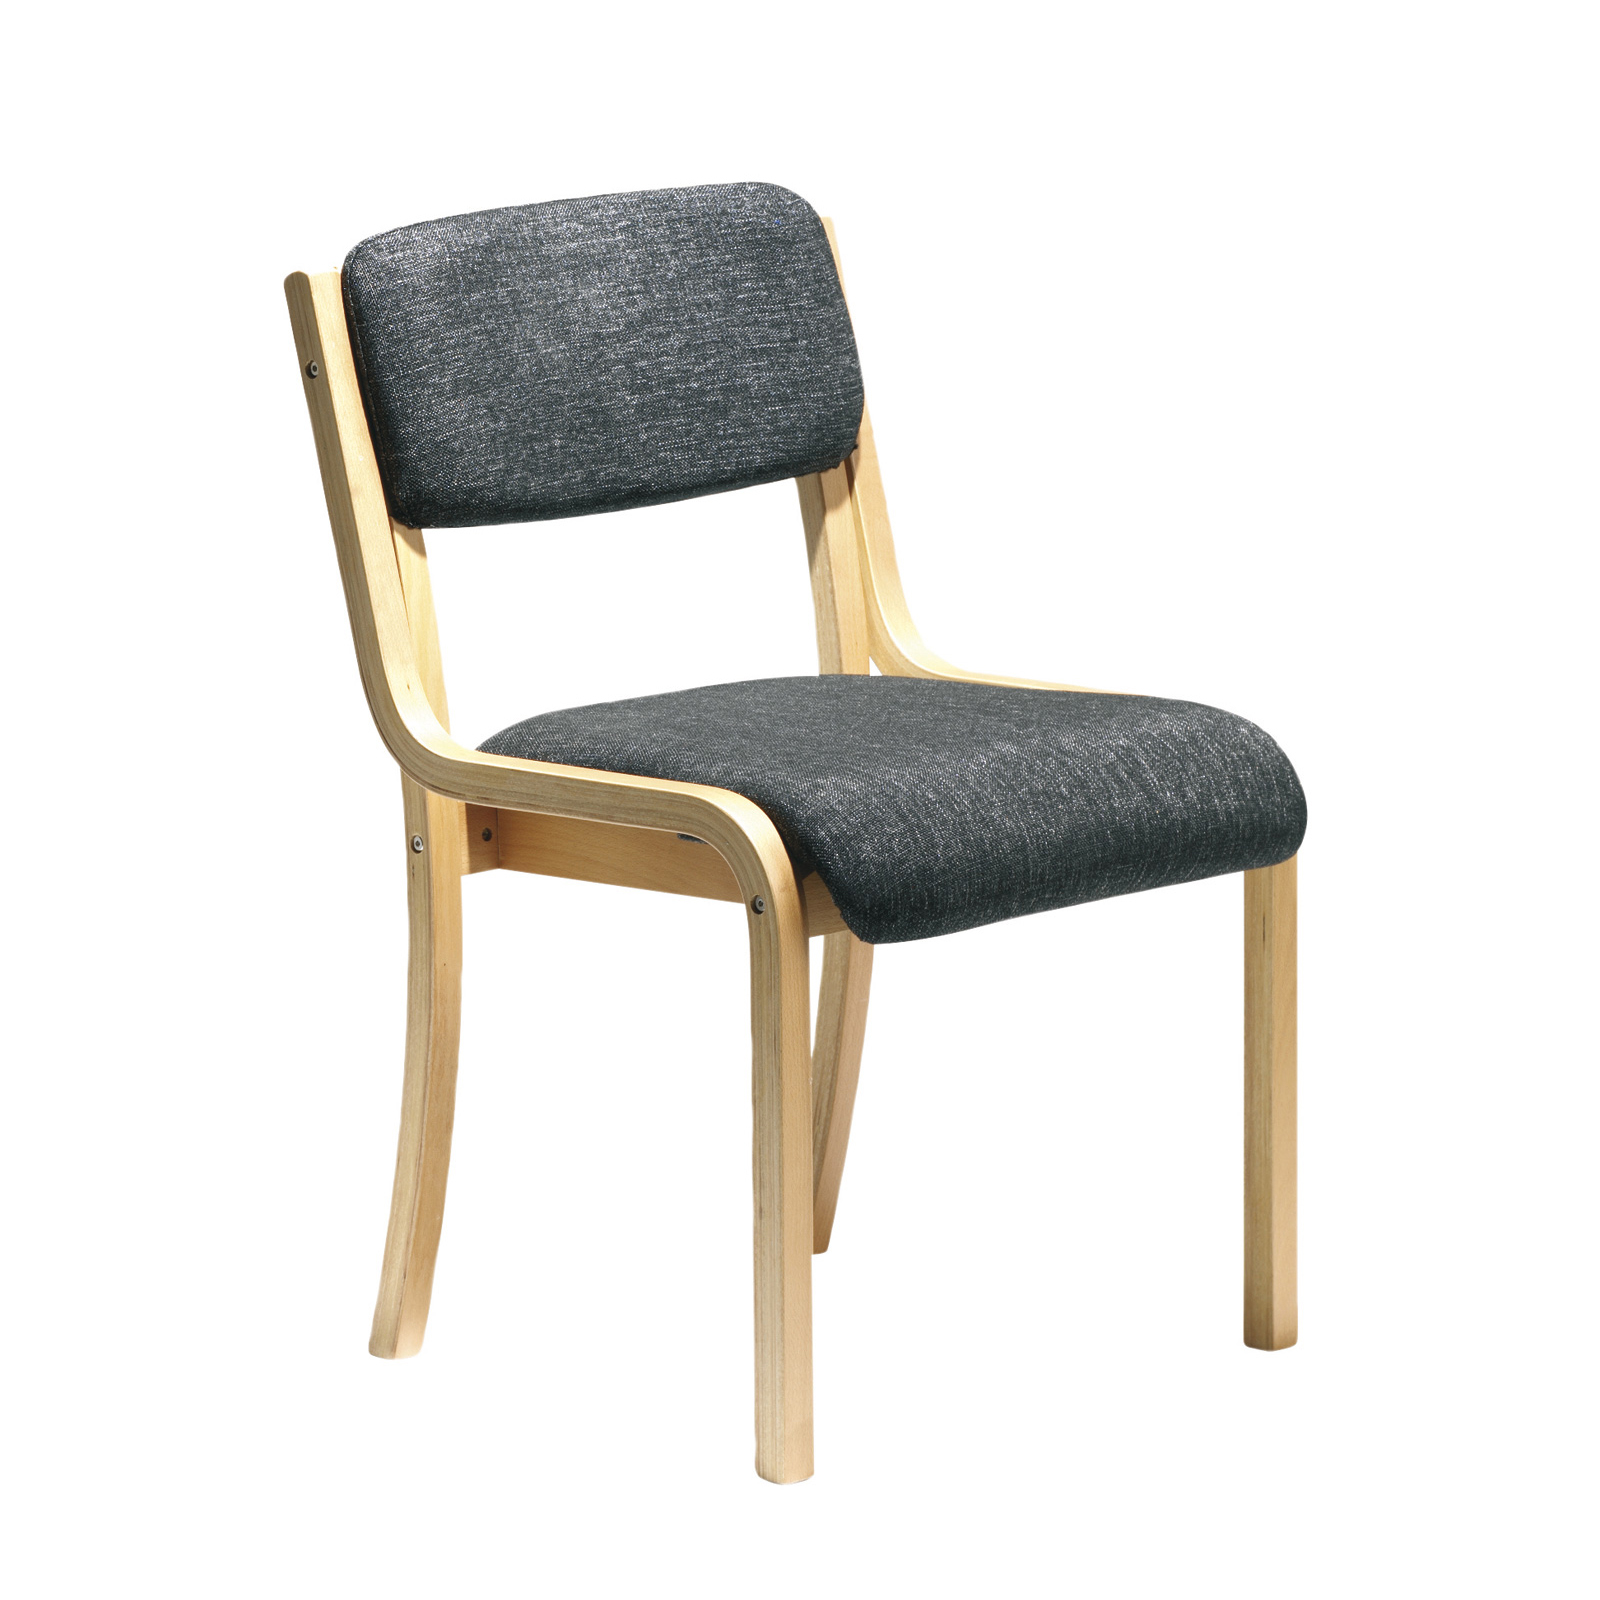 Prague wooden conference chair with no arms - charcoal